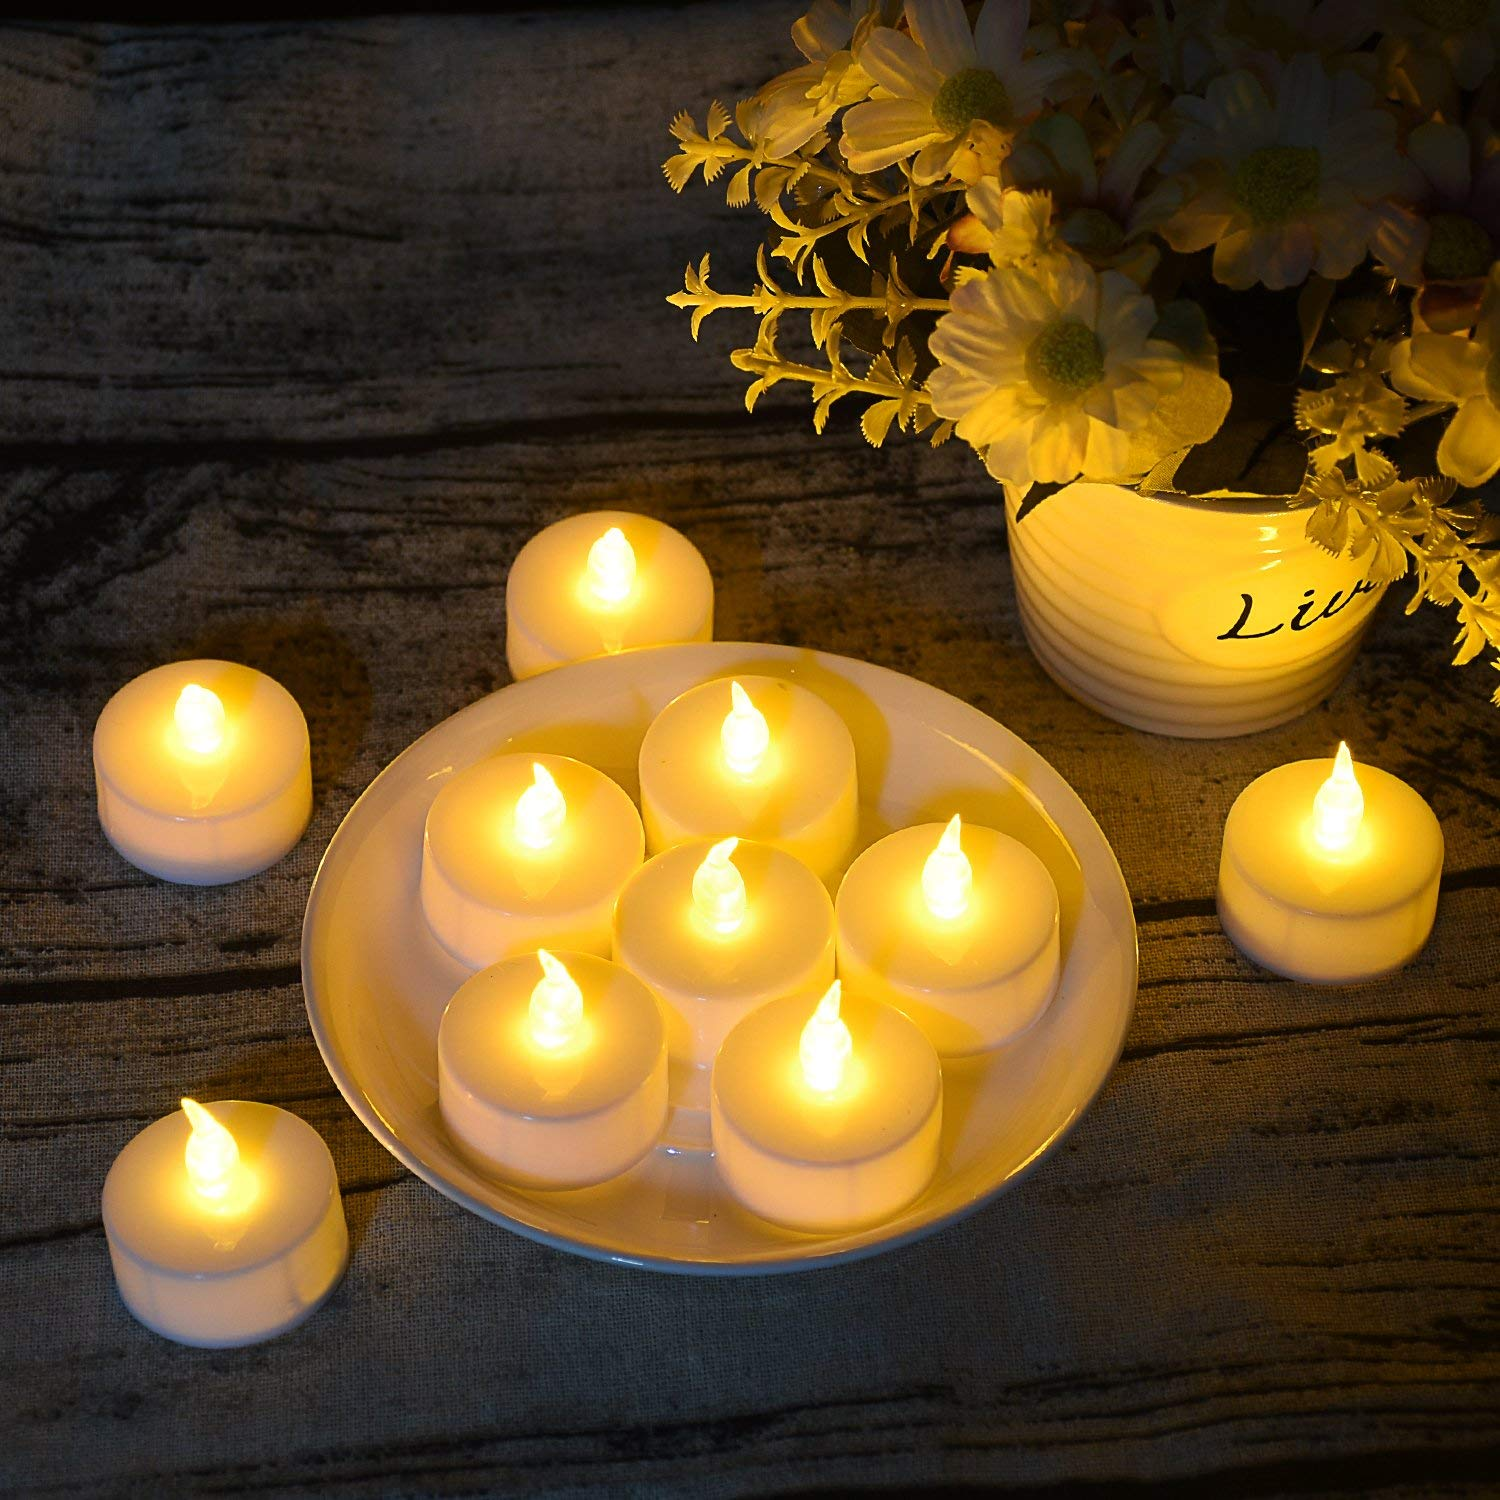 125 Pack LED Flameless Tea Light Candles, Battery Tea Light Candles, Warm White Realistic Flickering Bulb Light for Weeding, Votive, Patry, Home by Angium (Image #5)